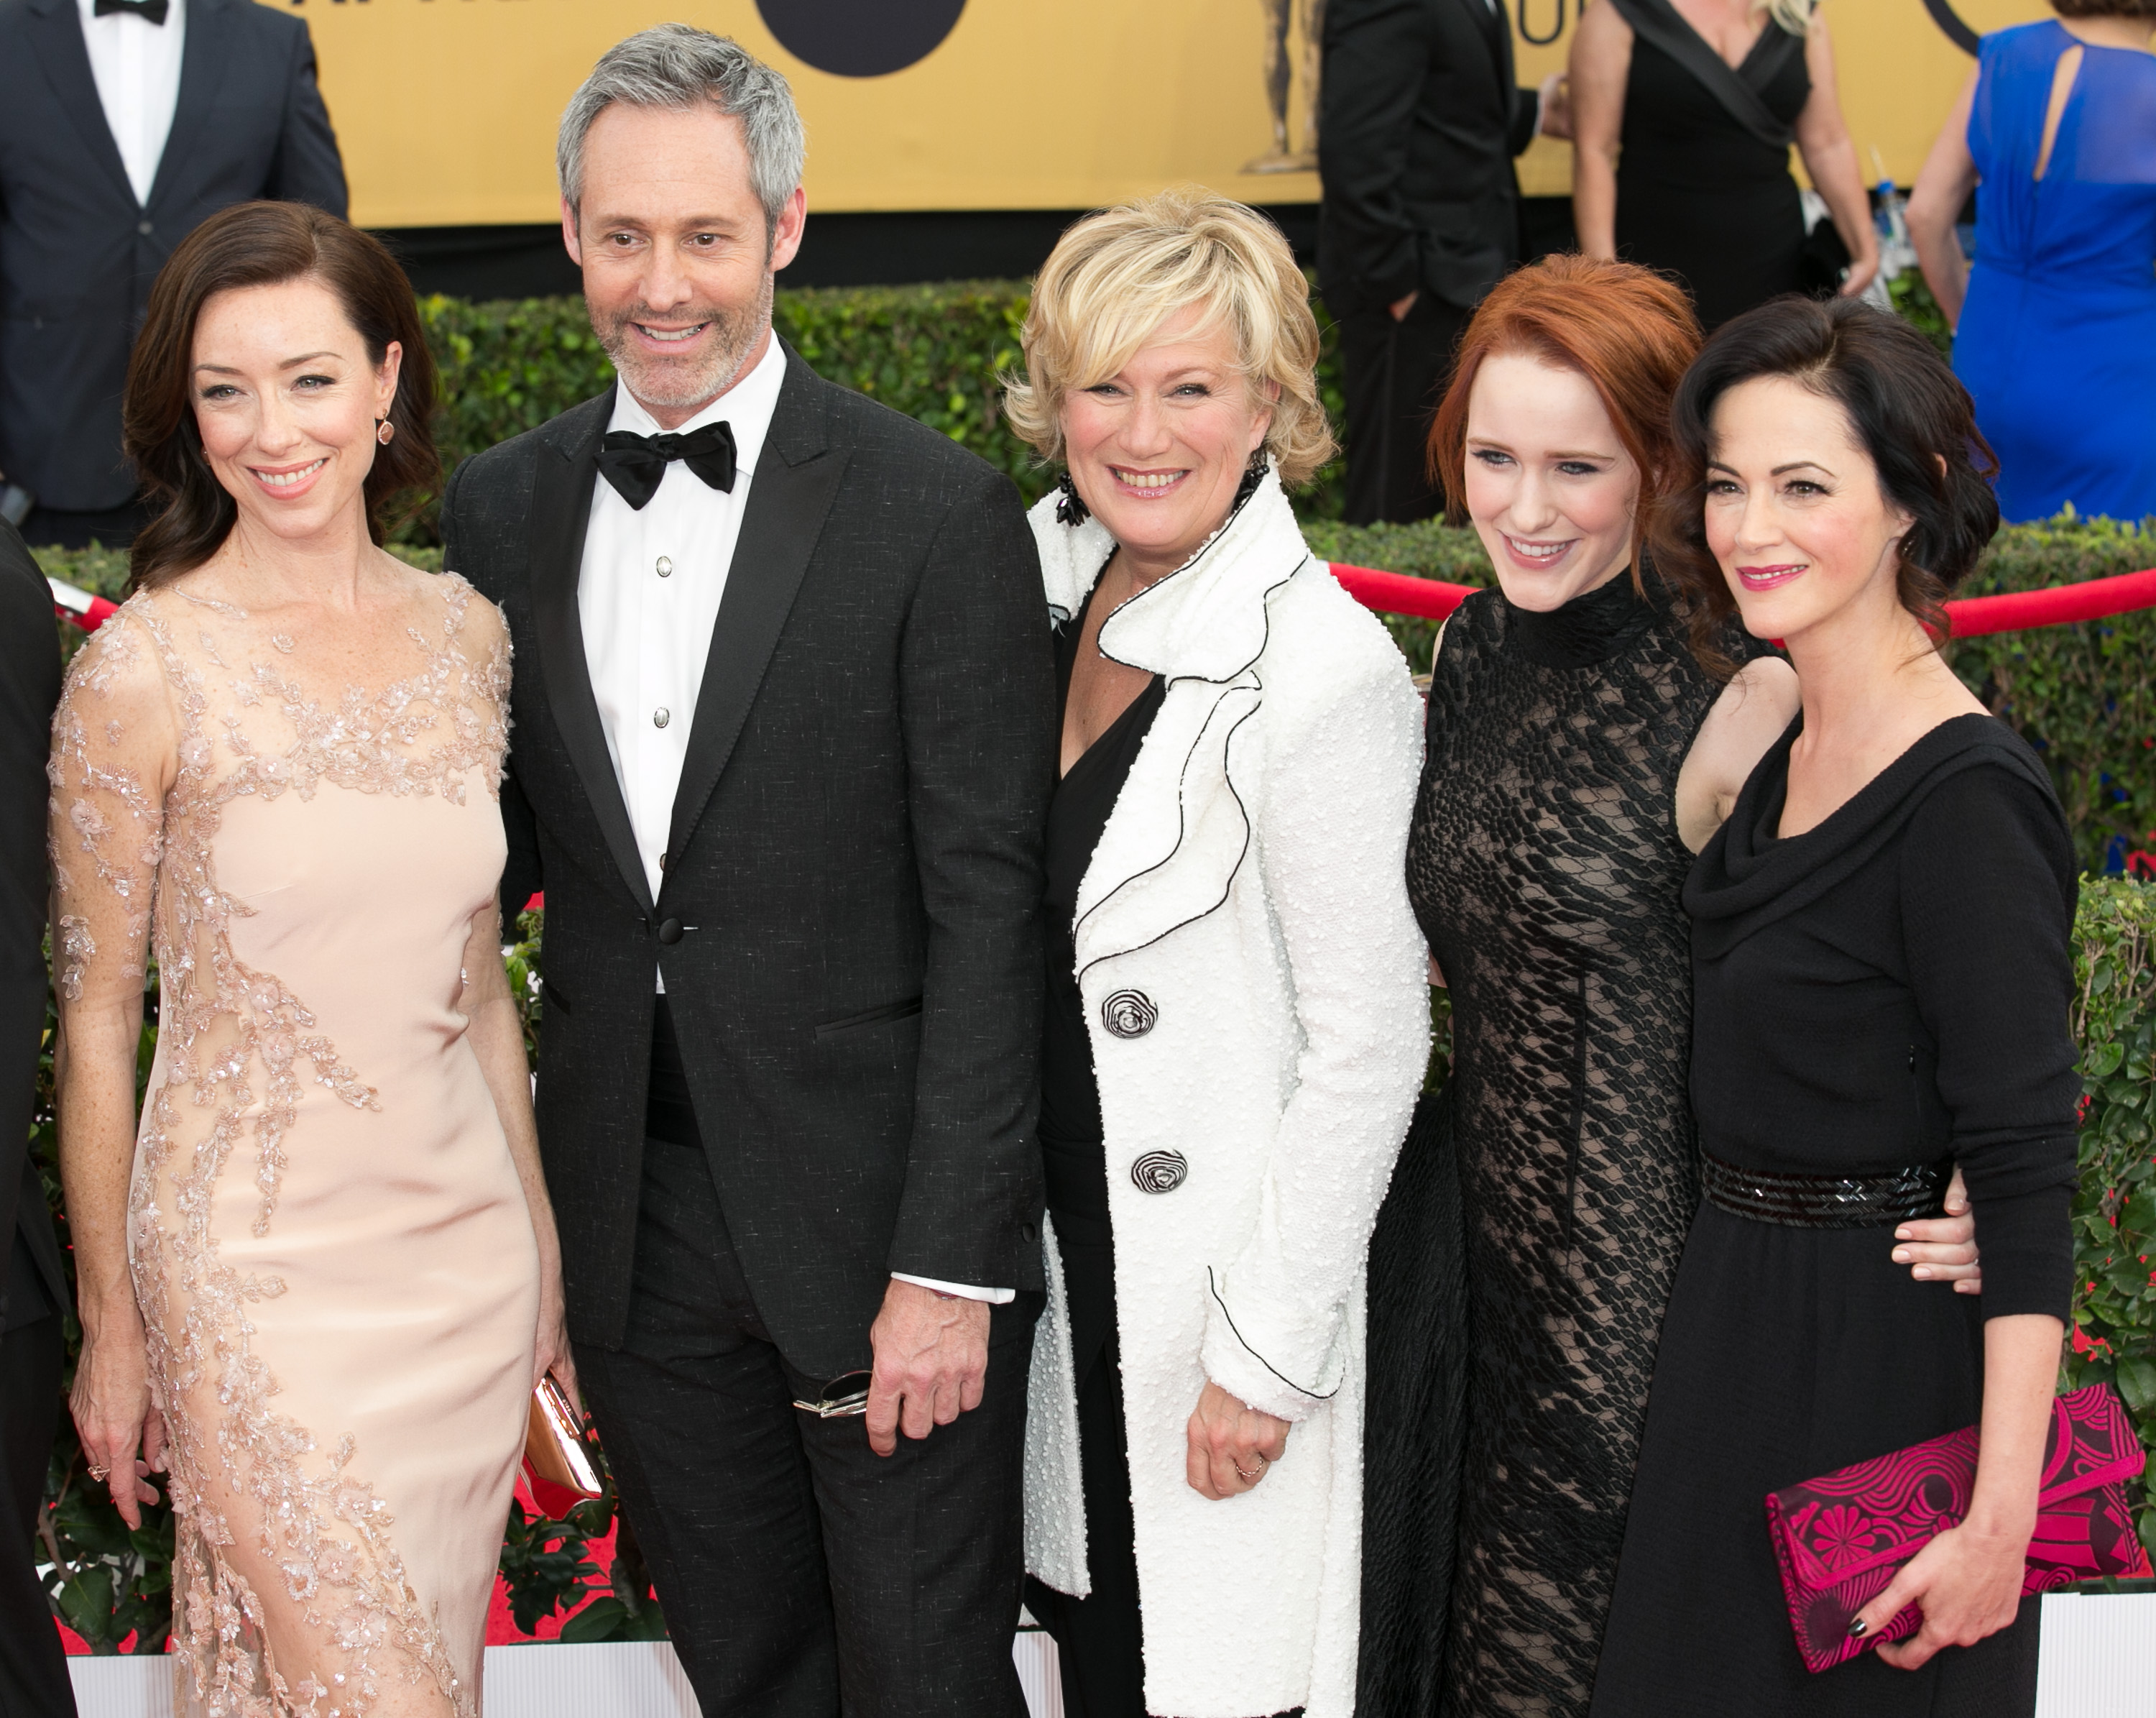 21st Annual SAG (Screen Actors Guild) Awards at Los Angeles Shrine Exposition Center - Arrivals  Featuring: Molly Parker, Michael Gill, Jayne Atkinson, Rachel Brosnahan, Joanna Going Where: Los Angeles, California, United States When: 25 Jan 2015 Credit: Brian To/WENN.com